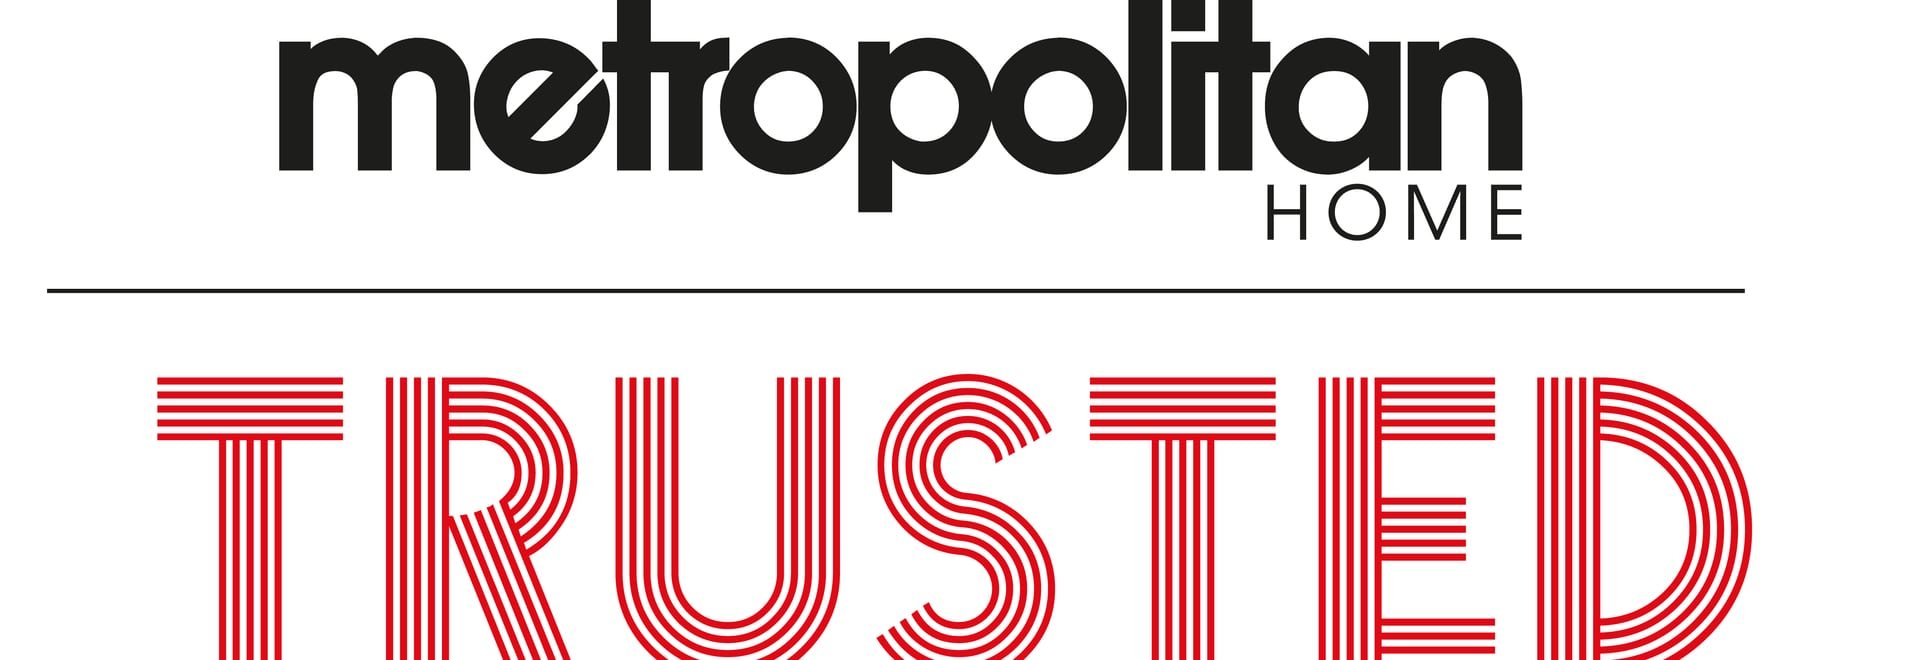 Metropolitan Home Trusted Brand Awards 2017